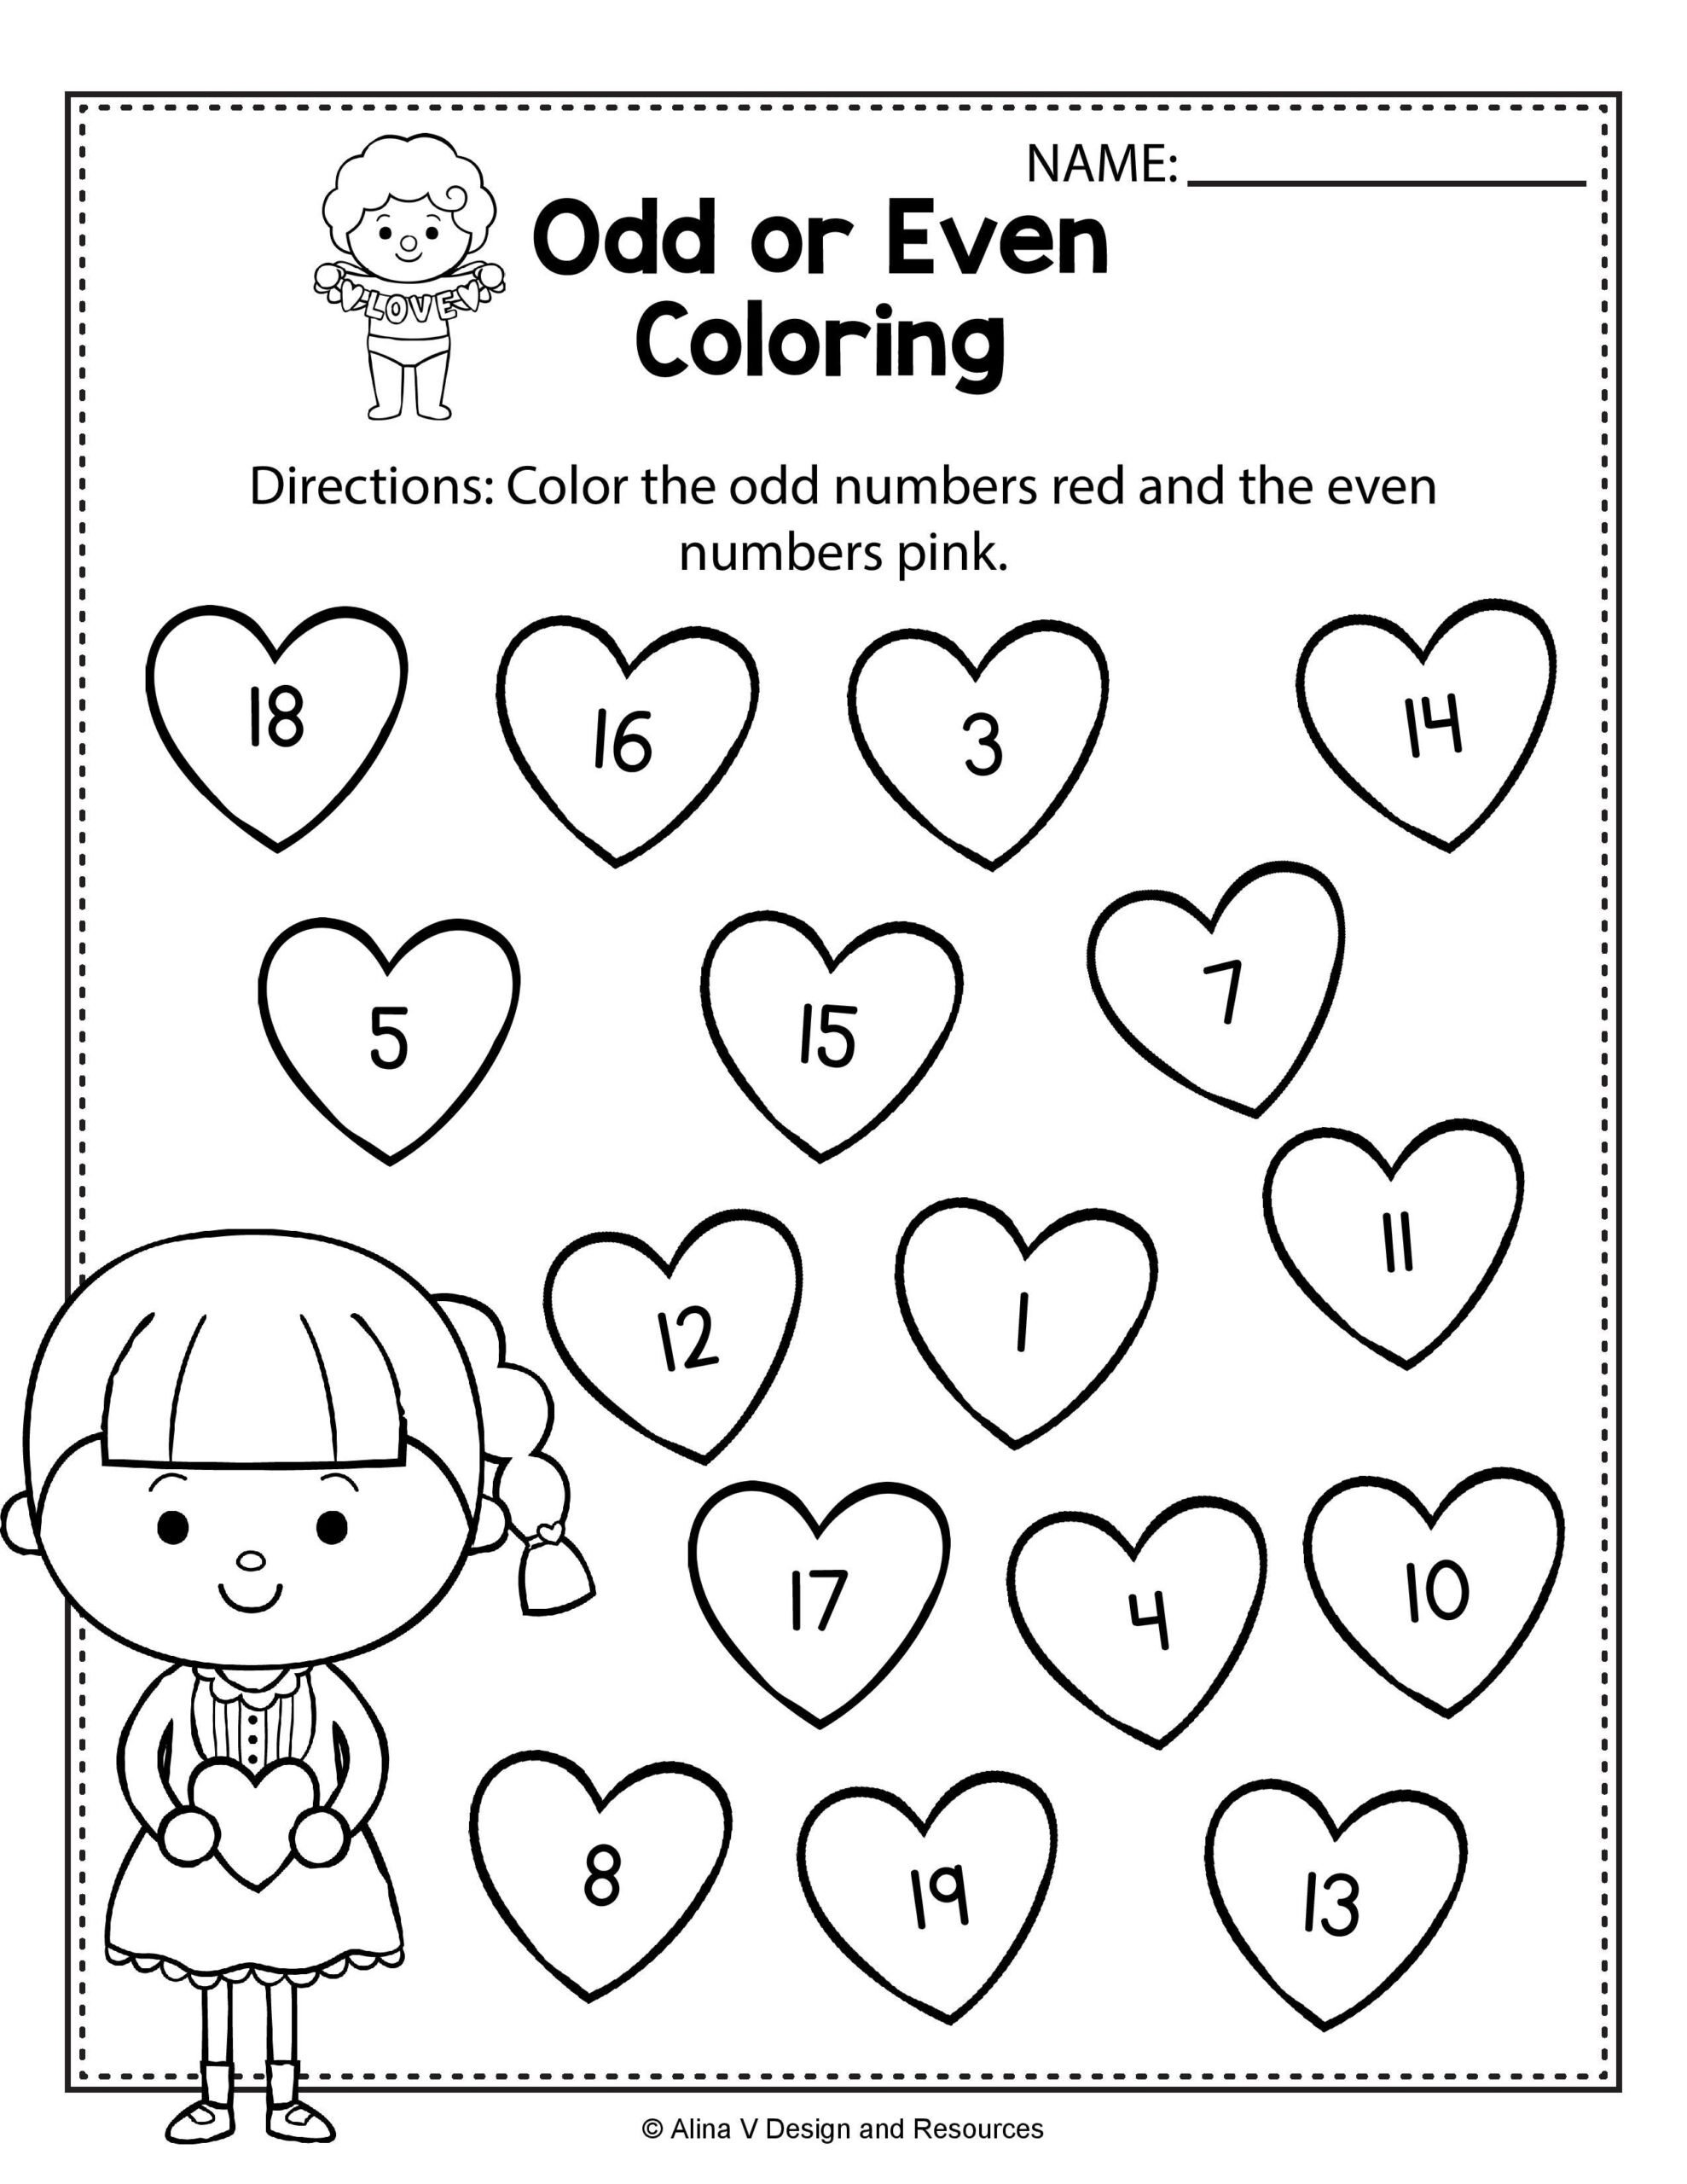 Creative Writing Worksheets for Adults Worksheets Christmas Creative Writing Worksheets Printable